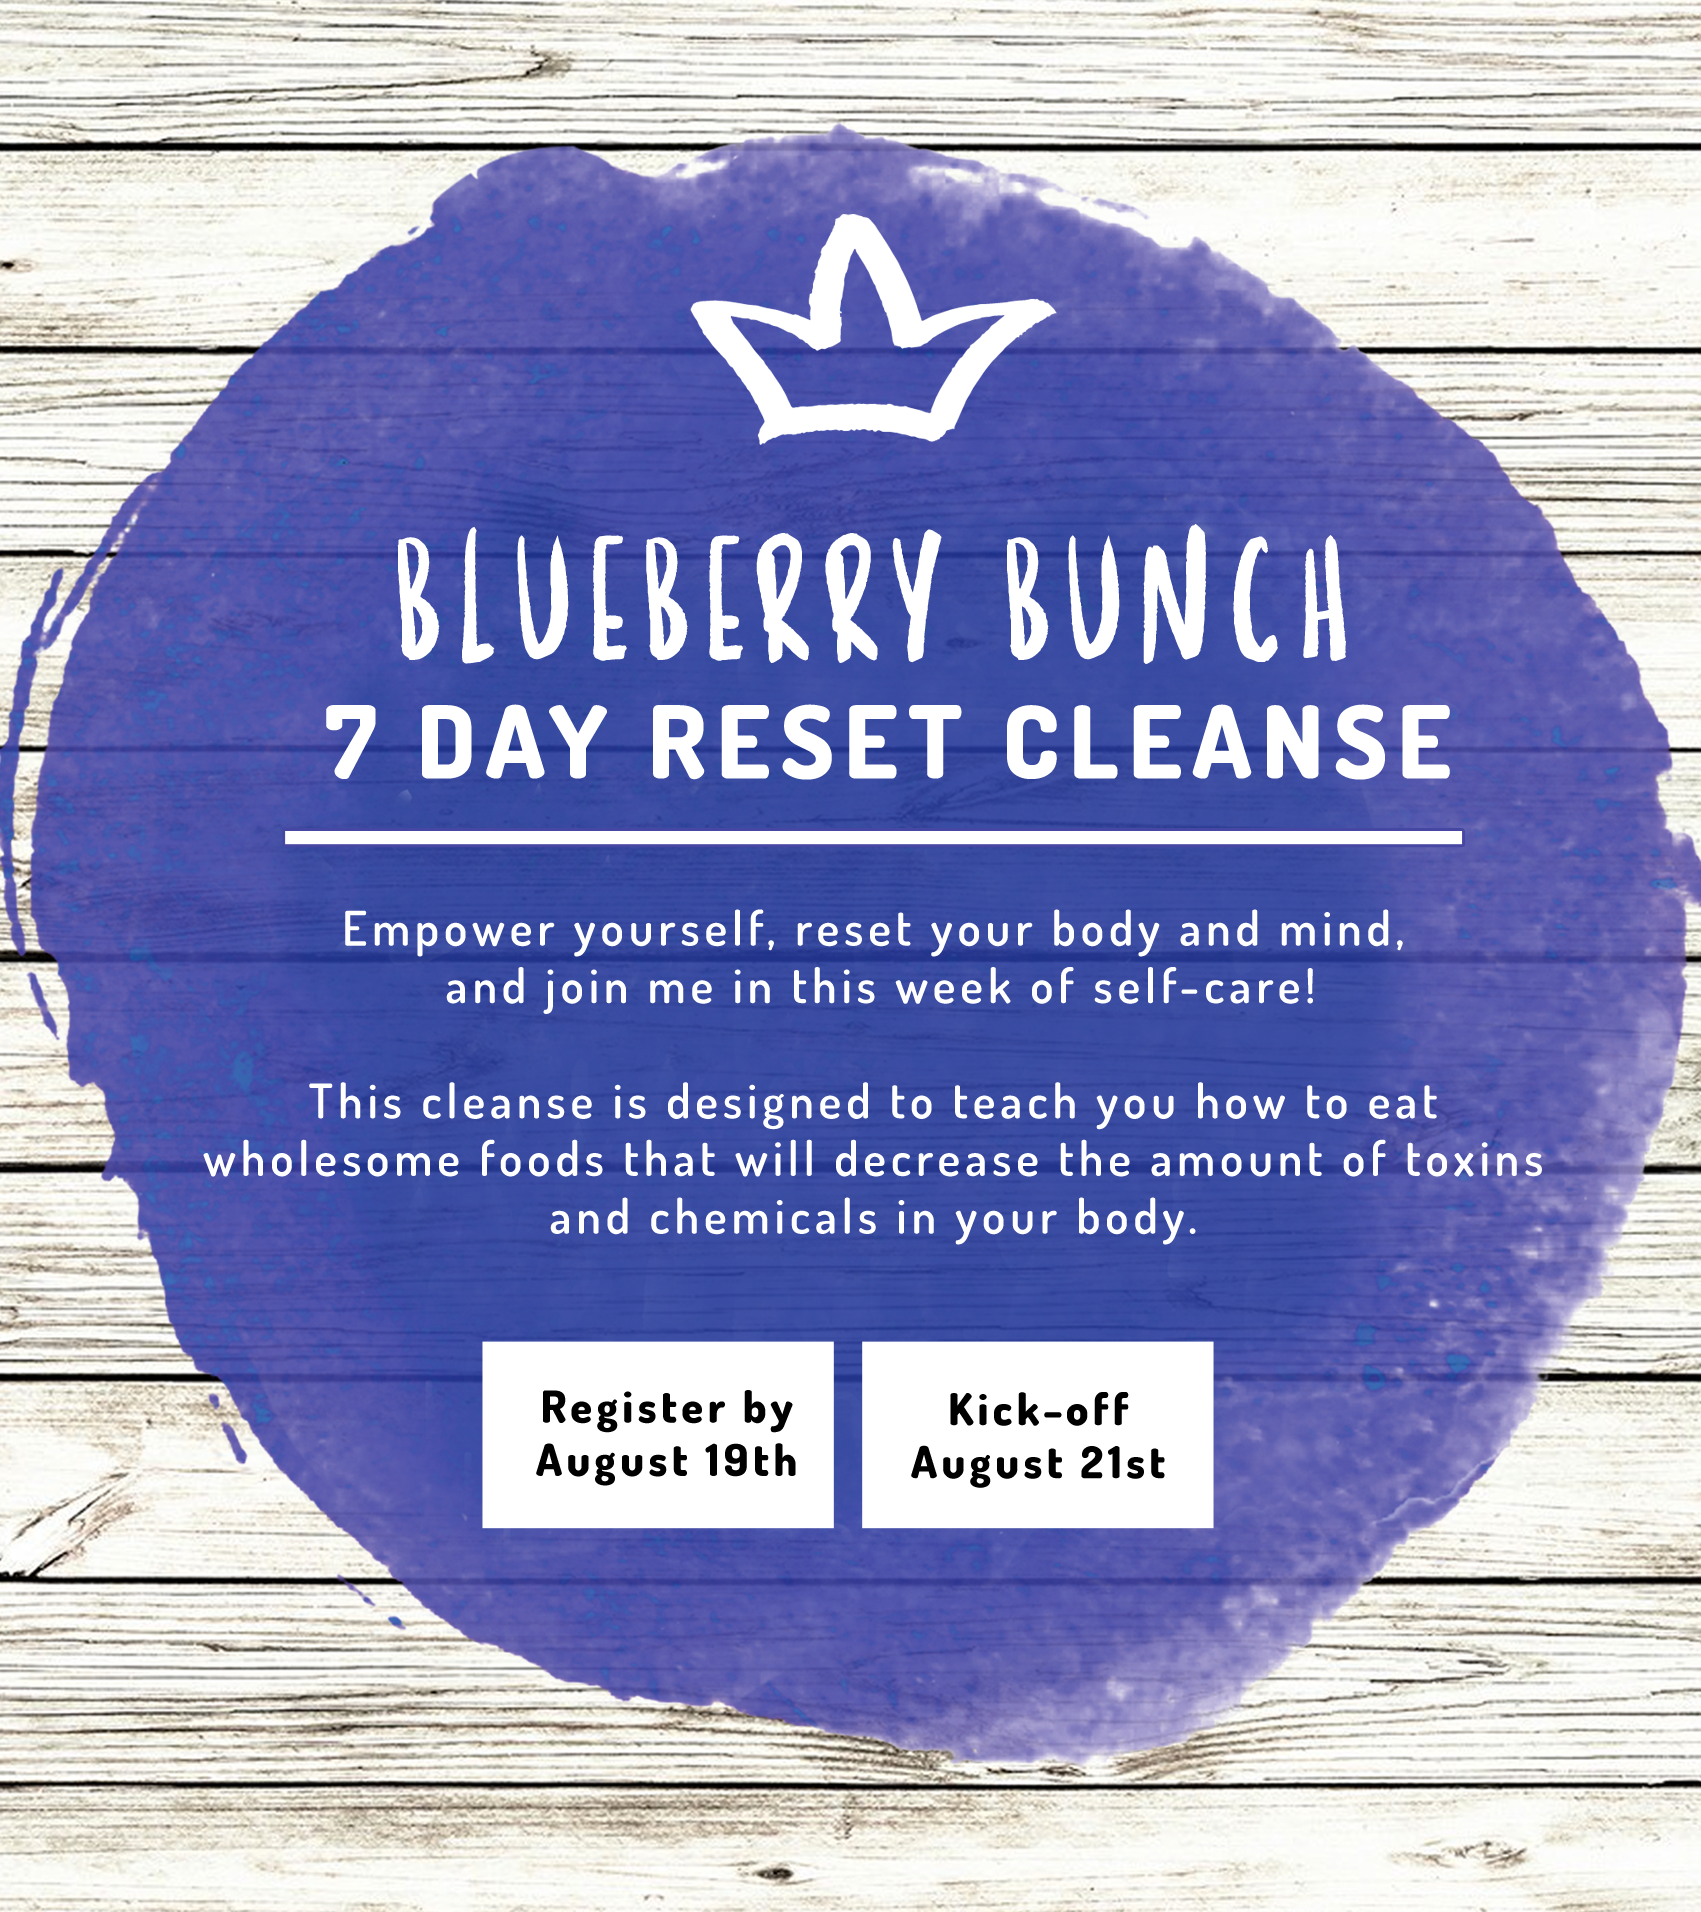 7 Days Reset Cleanse by Blueberry Bunch